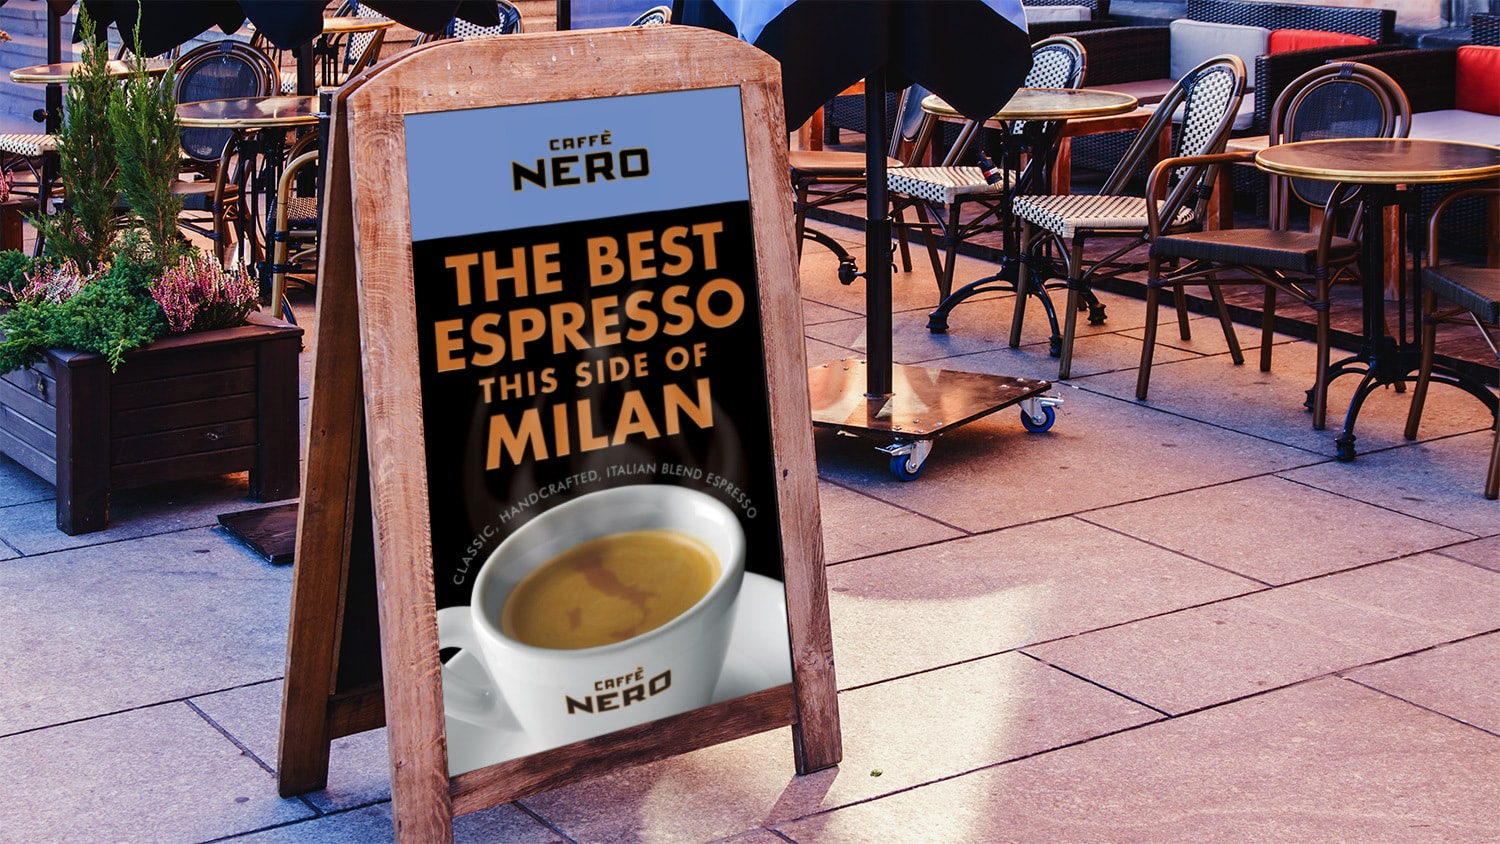 Signage with Caffè Nero promotion showing a digitally retouched map of Italy swirling in the froth of the Espresso in the cup